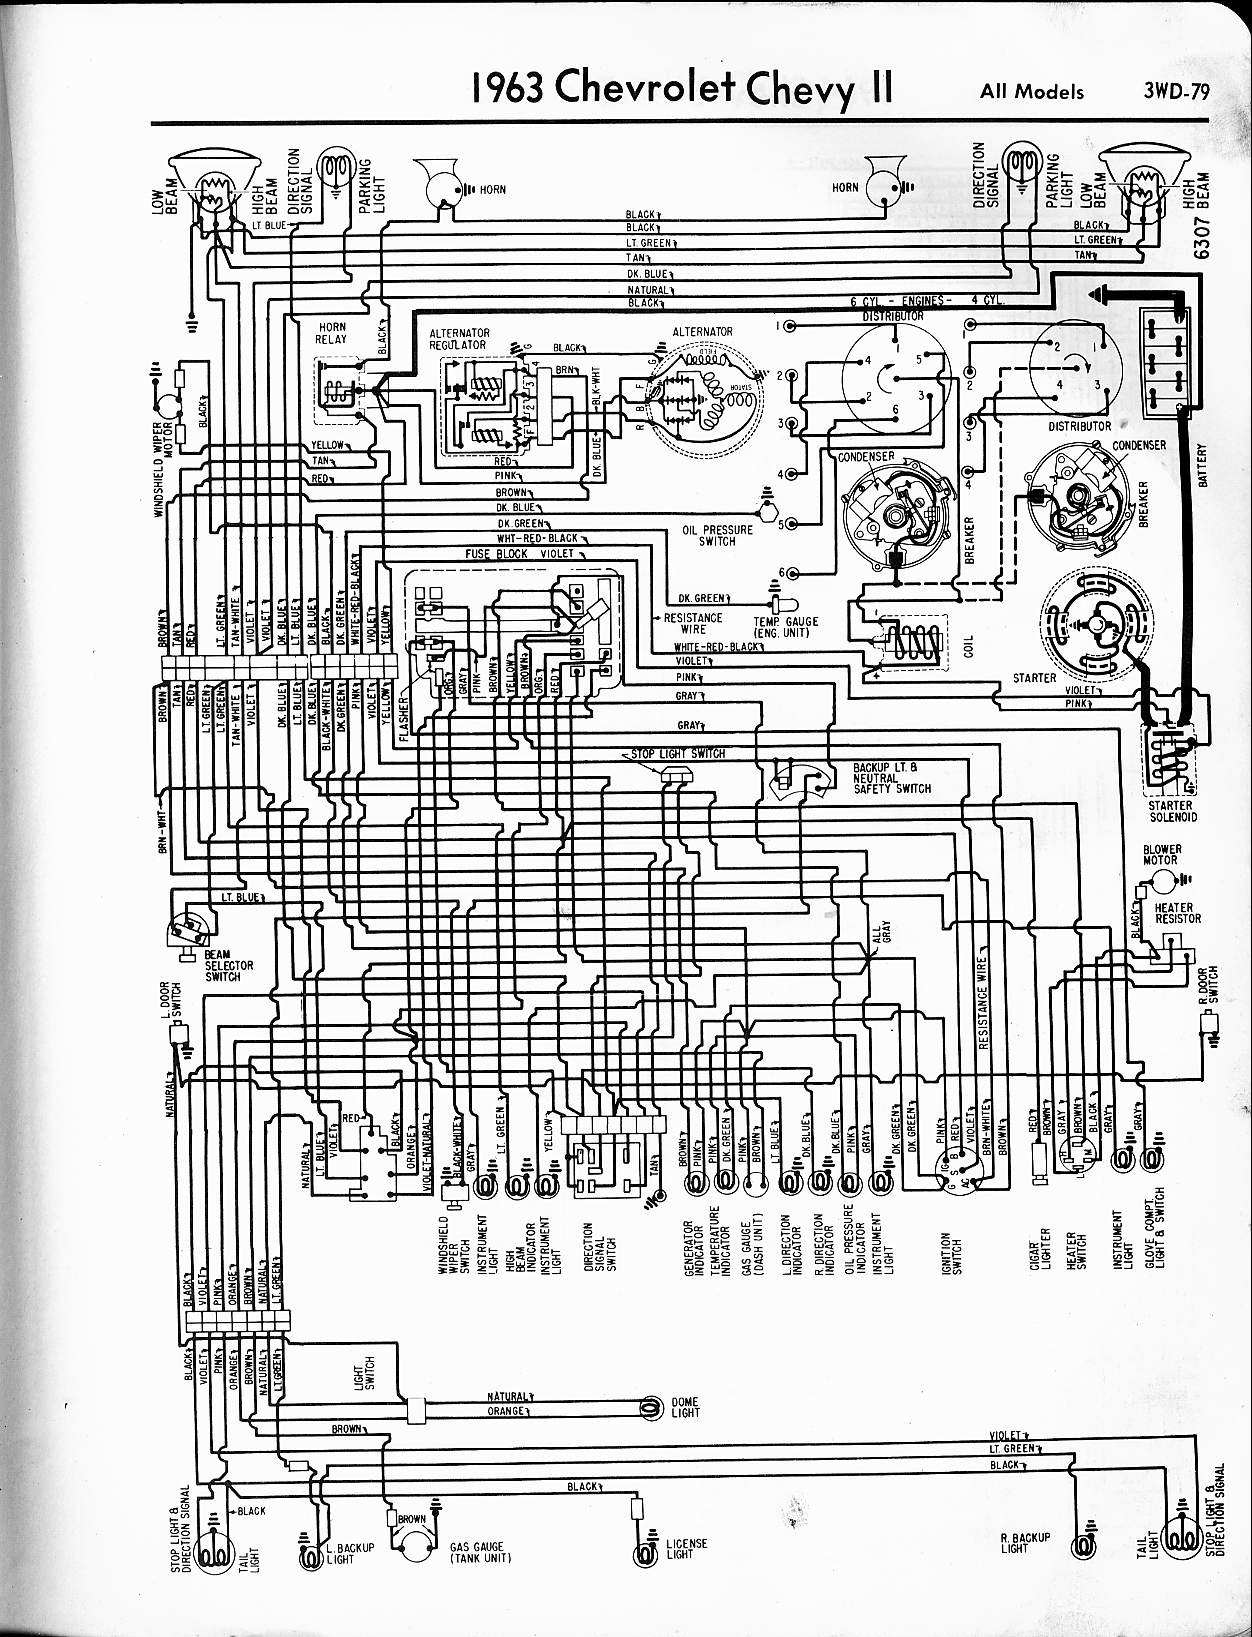 57 65 chevy wiring diagrams Chevy Impala Wiring Diagram at 63 Chevy Impala Wiring Diagram